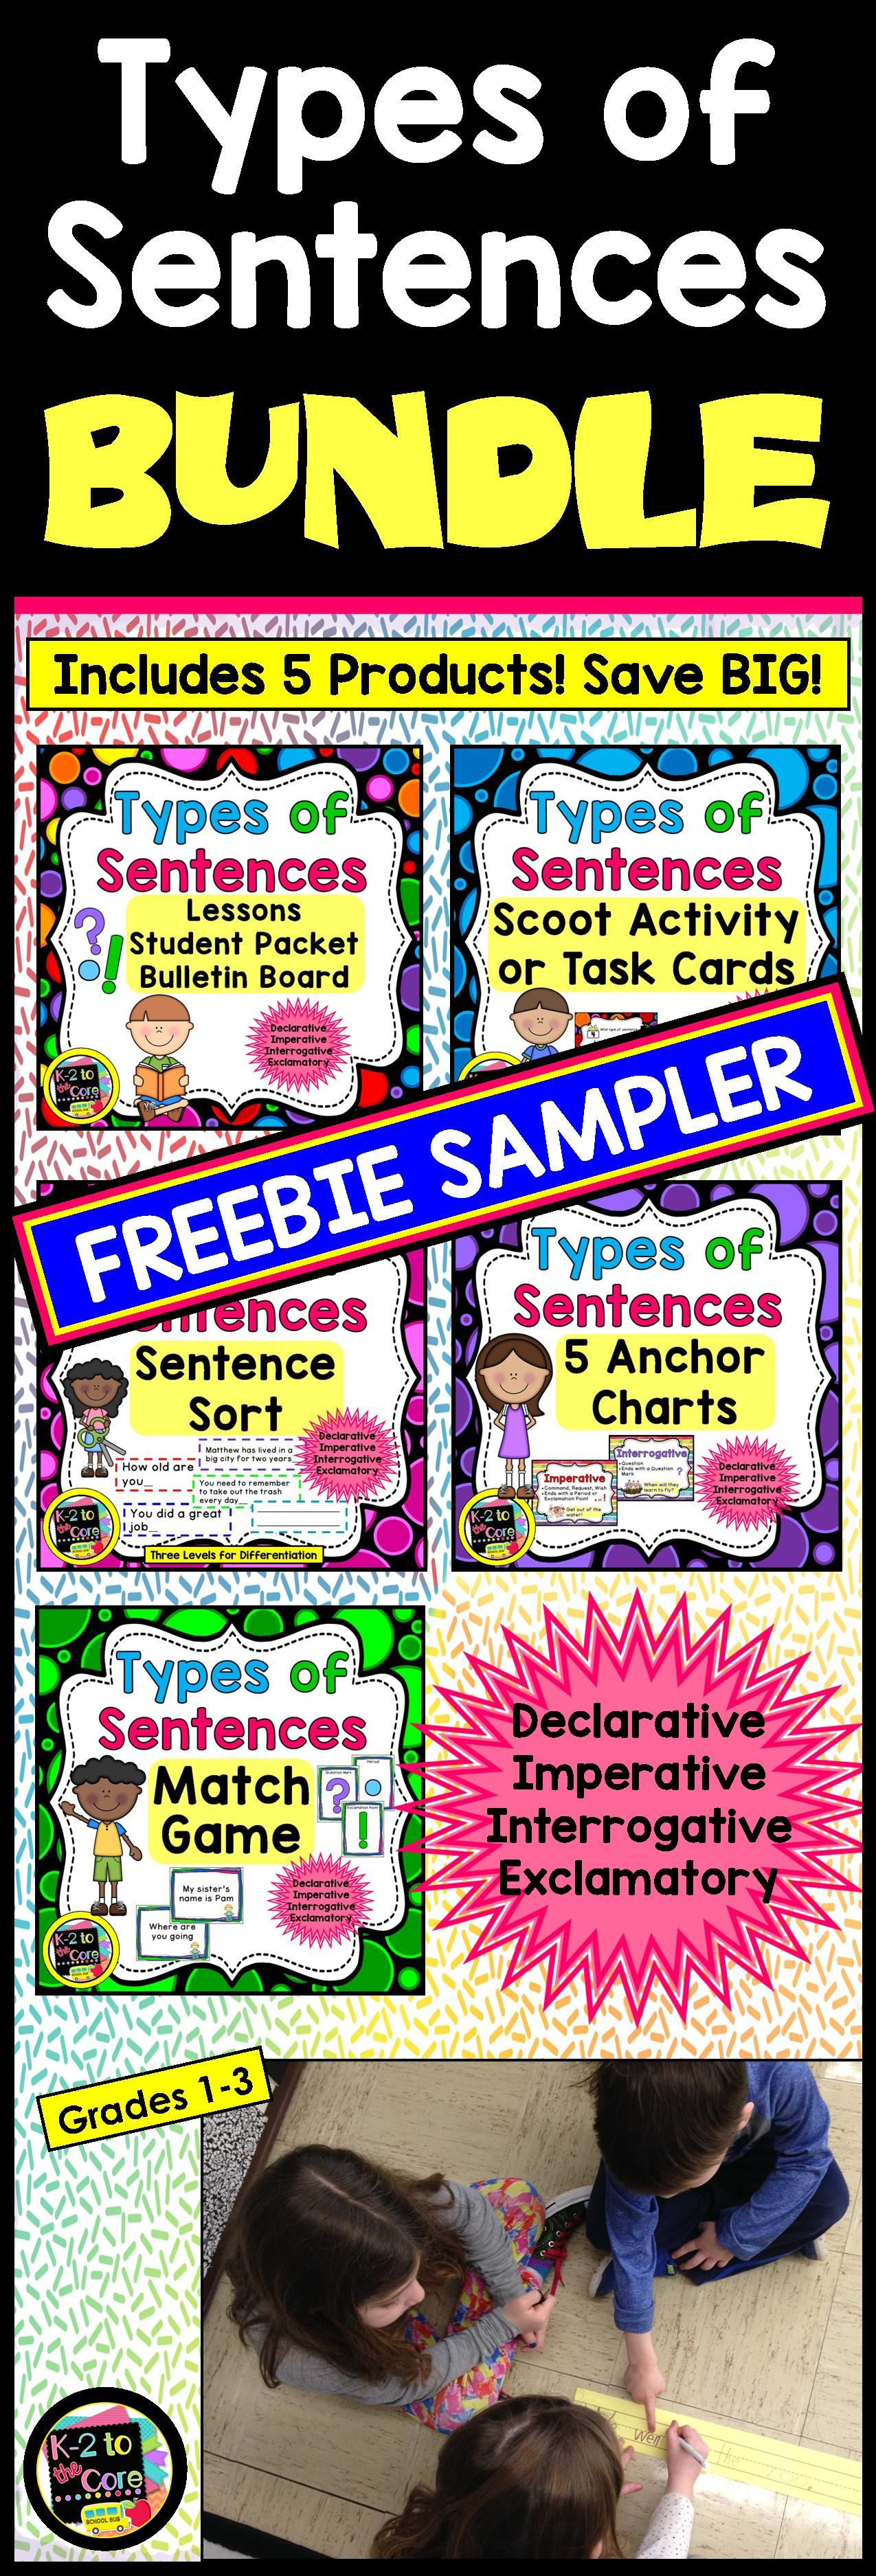 Types Of Sentences And Punctuation Freebie Sampler